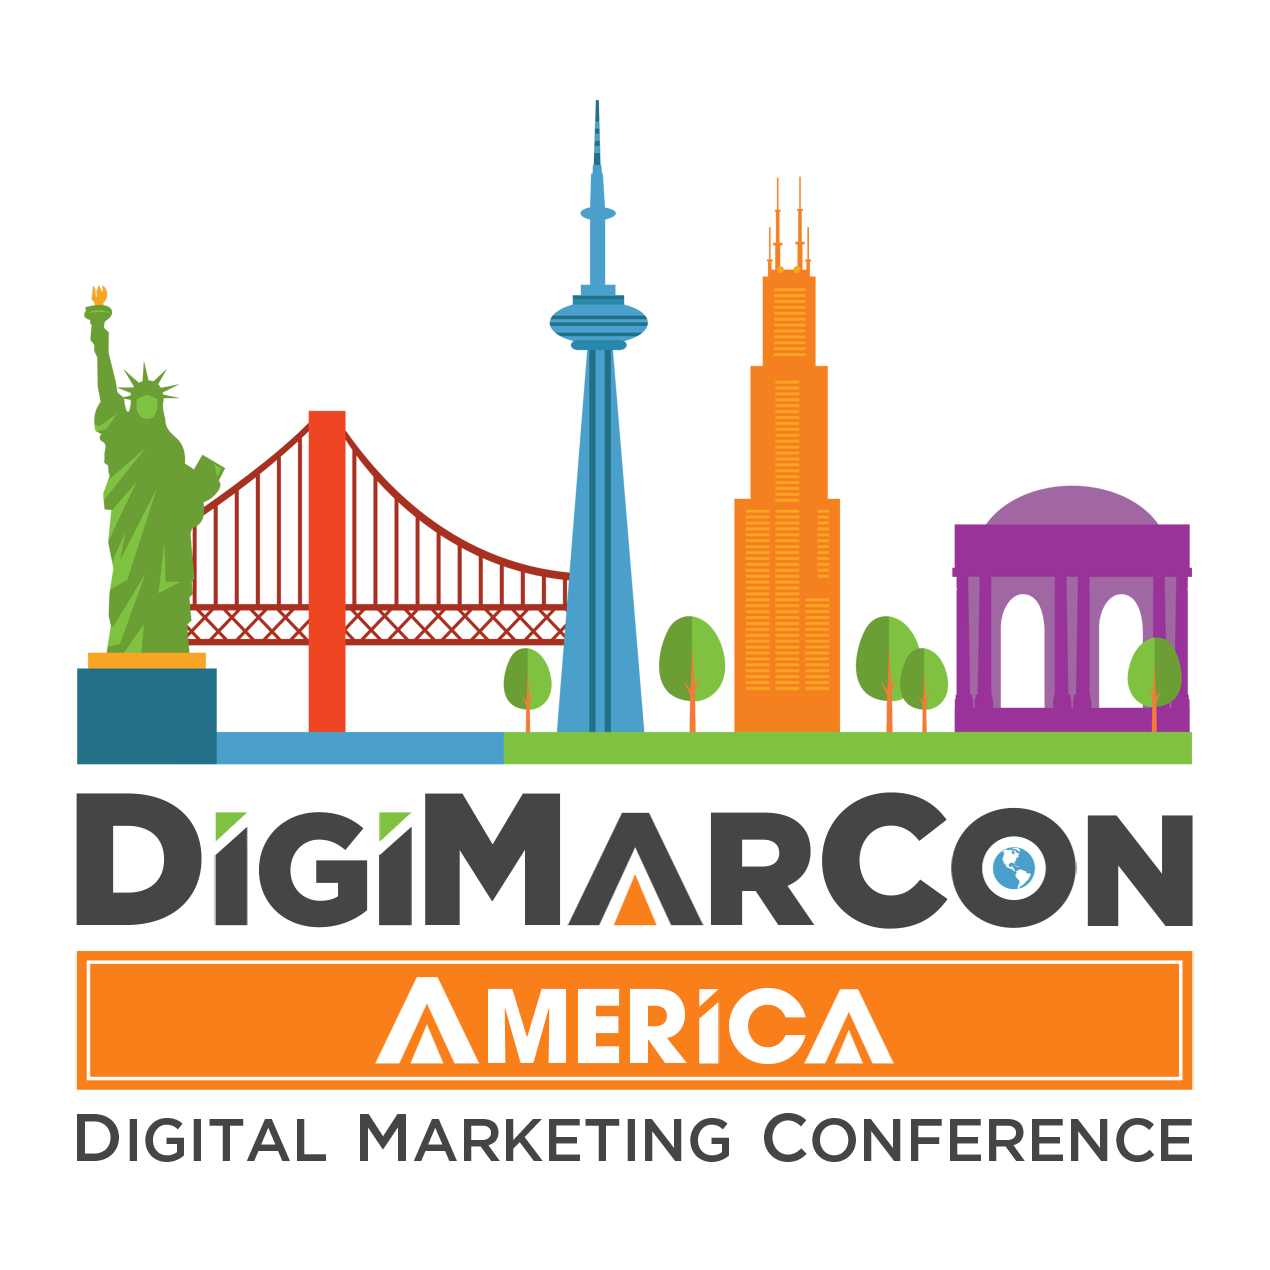 DigiMarCon America 2022 – Digital Marketing, Media and Advertising Conference